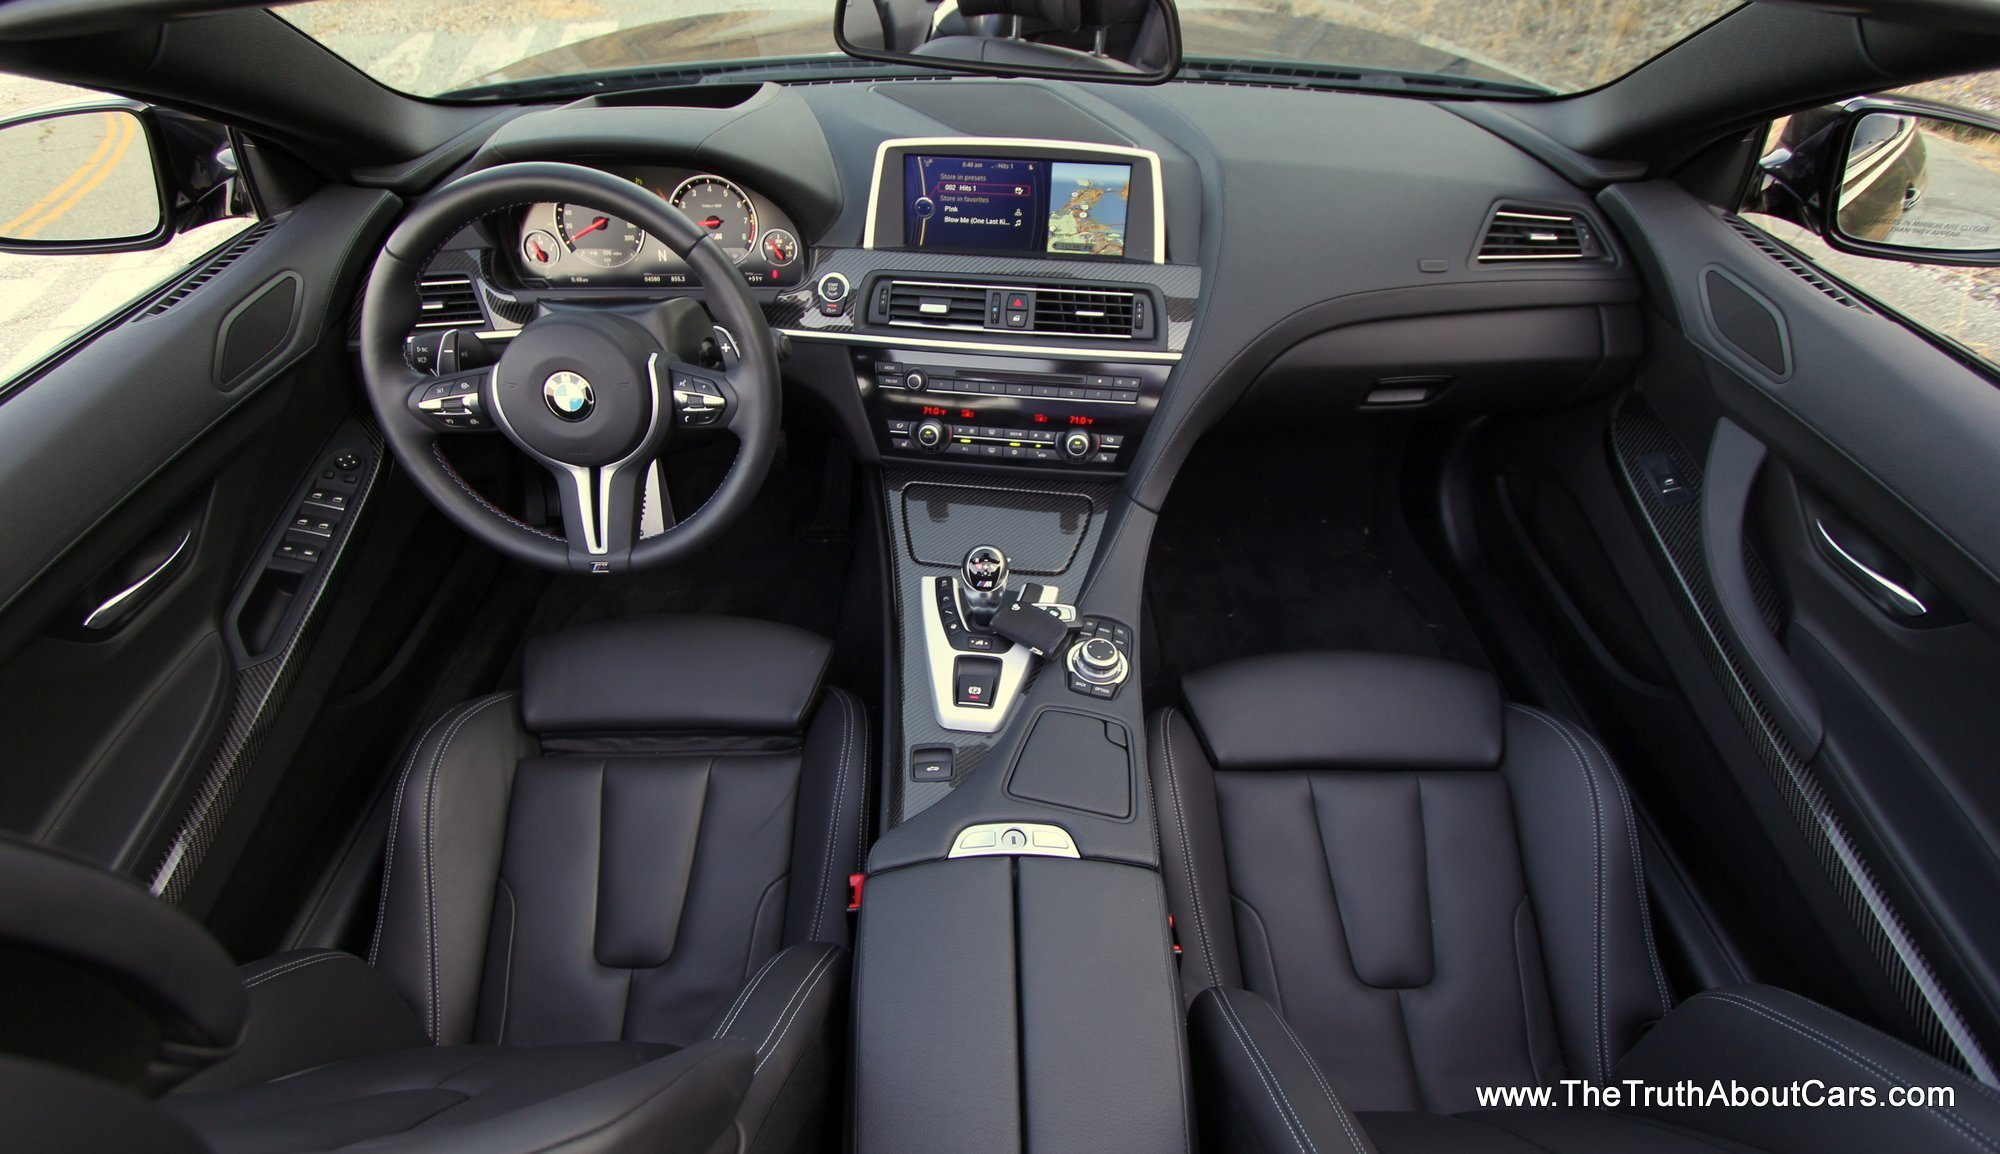 Latest 2012 Bmw M6 Convertible Interior Picture Courtesy Of Free Download